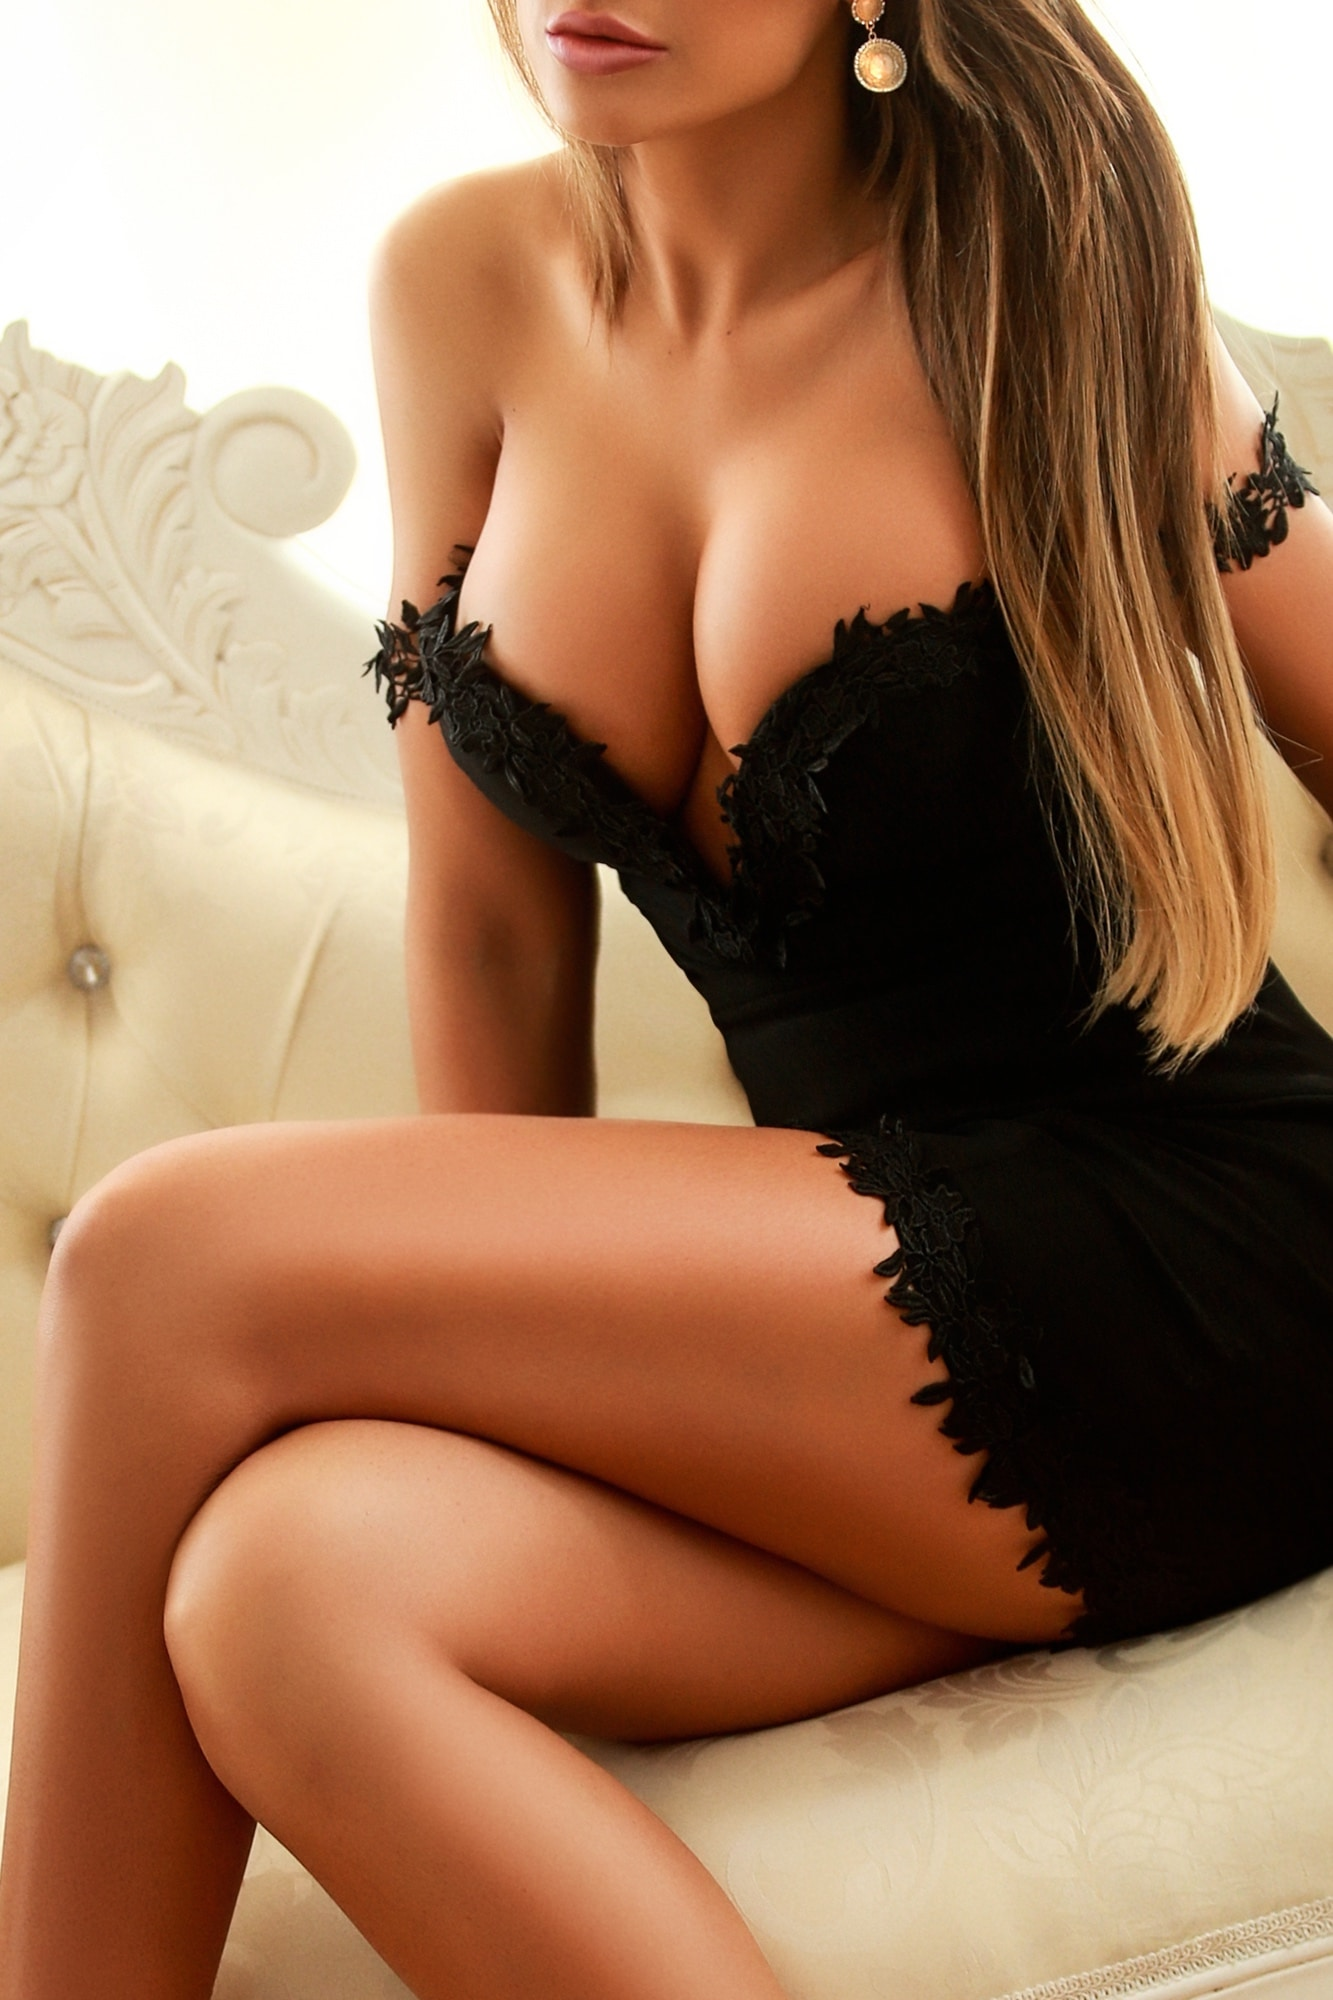 Brazilian escorts of south florida Miami Escorts, Ft Lauderdale, West Palm Beach, South Florida Escorts